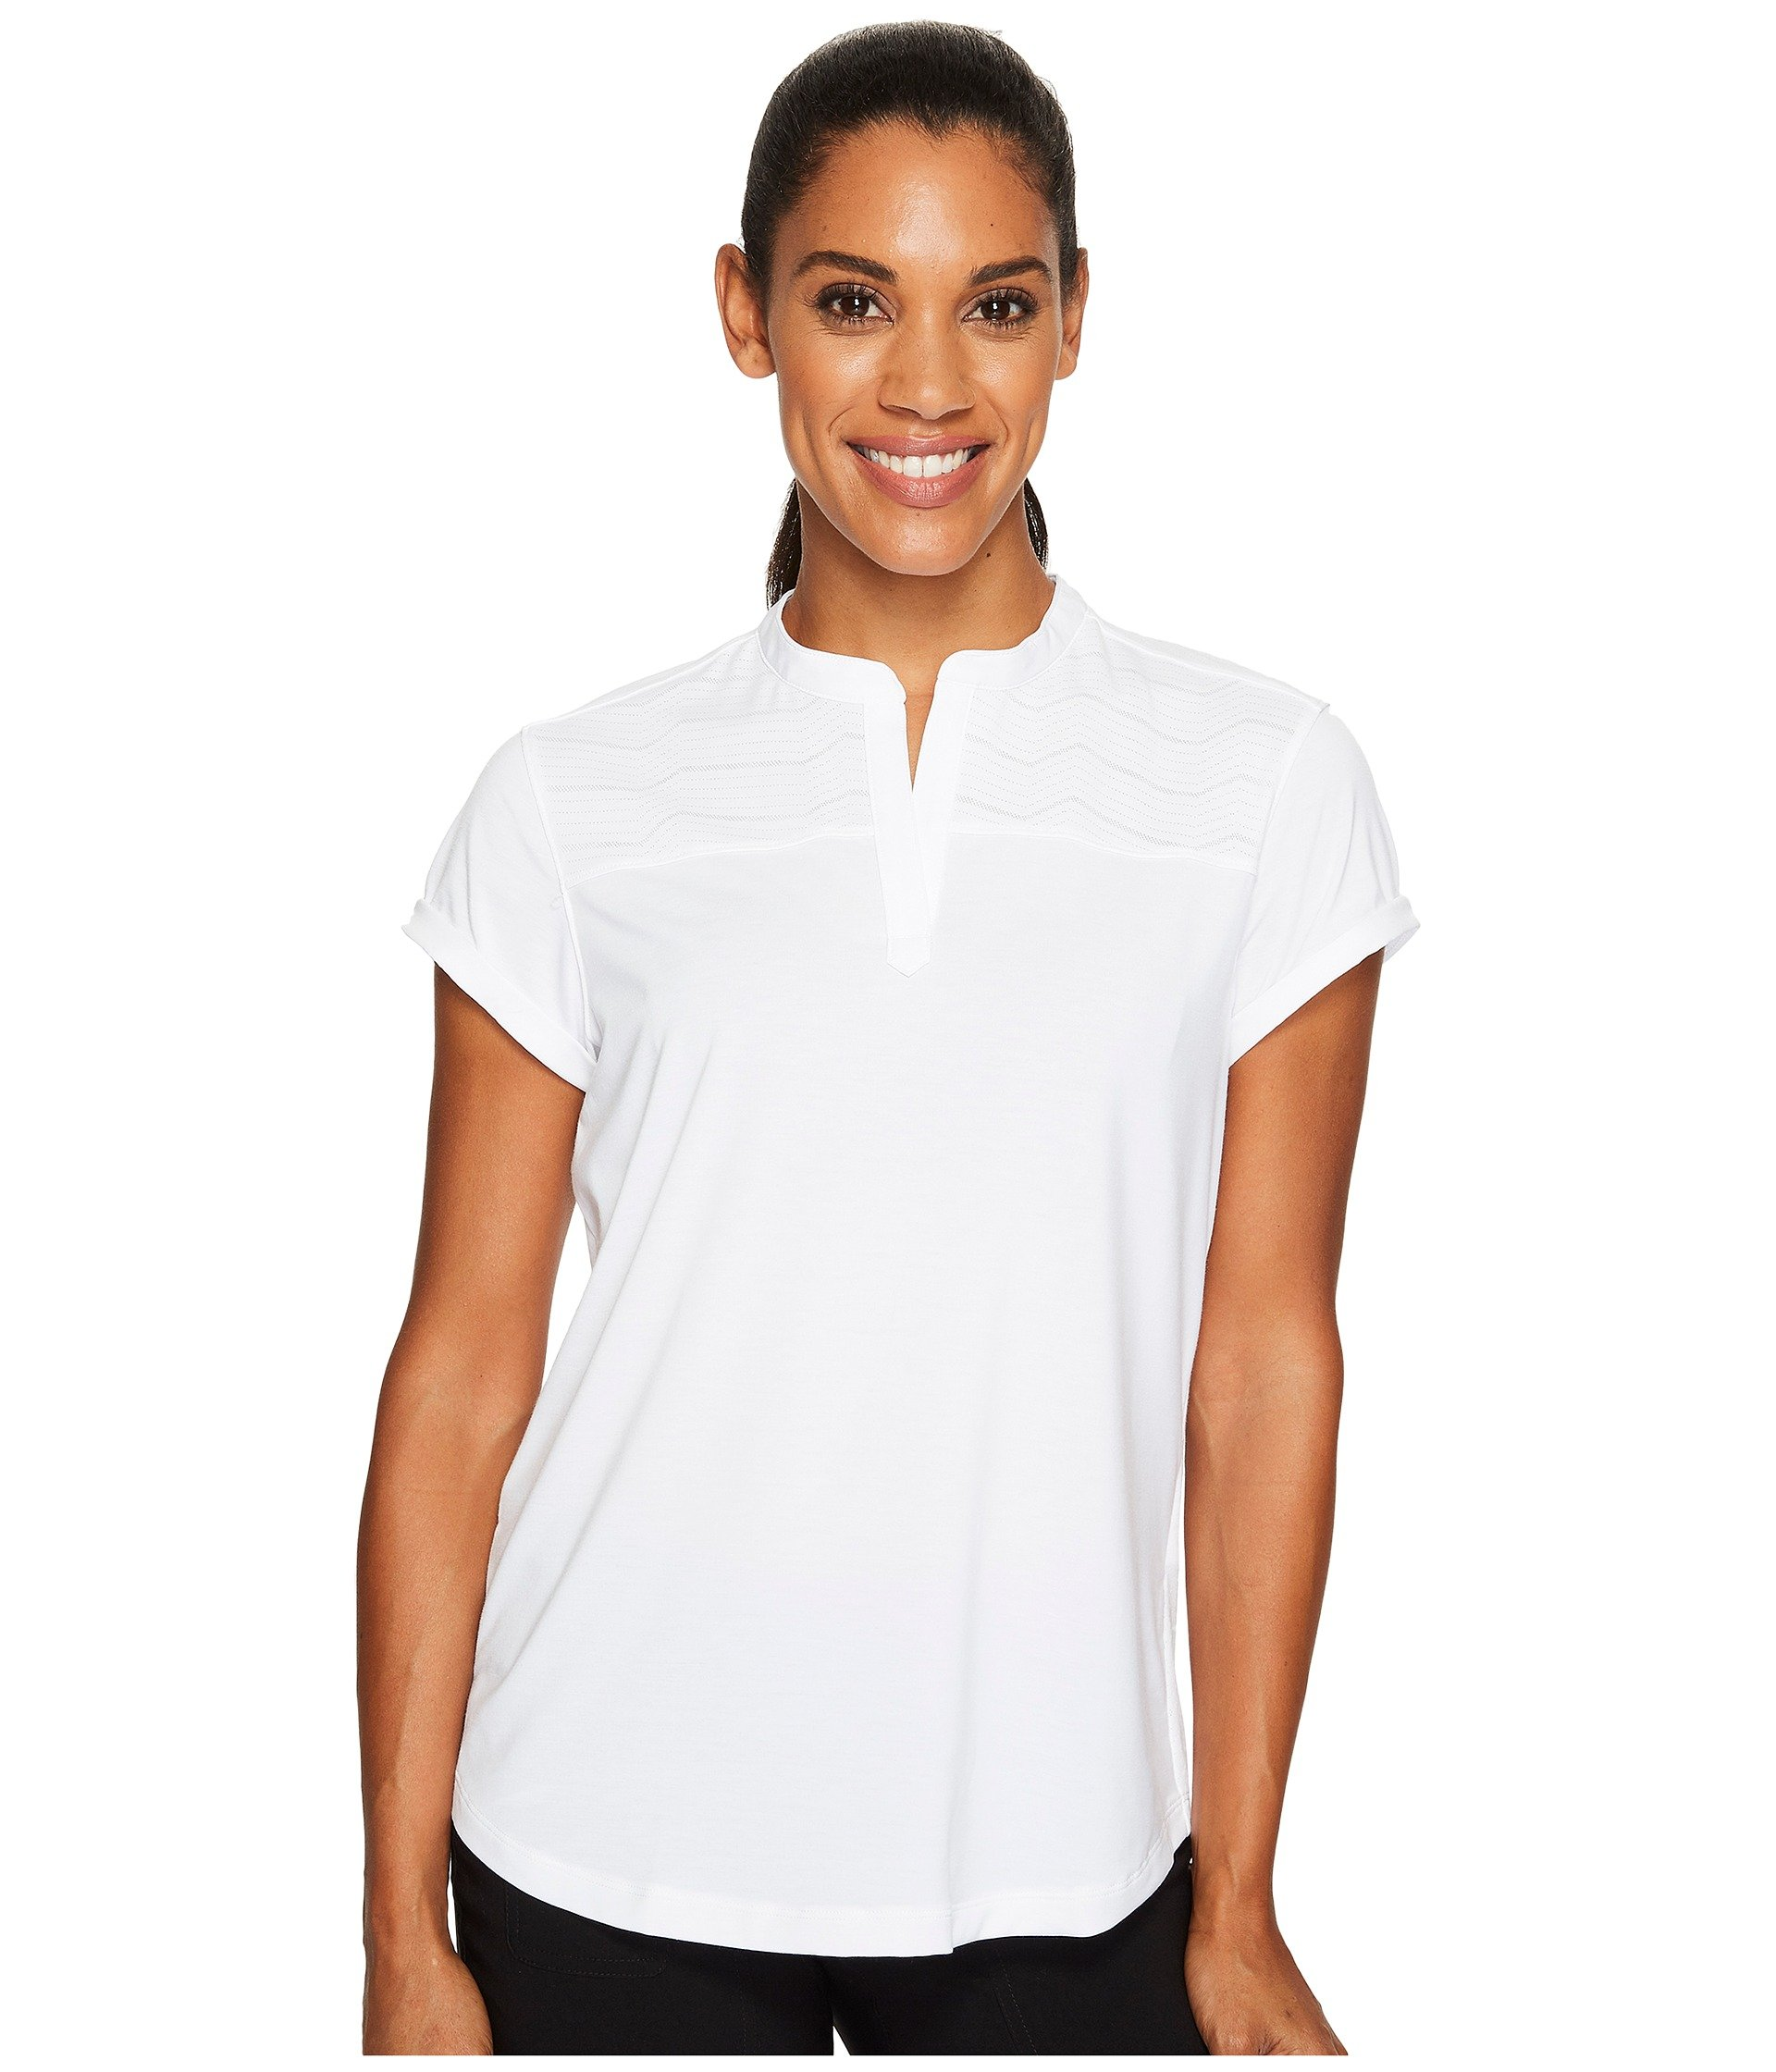 Camiseta Tipo Polo para Mujer Under Armour Golf Mandarin Jacquard Polo Shirt  + Under Armour en VeoyCompro.net